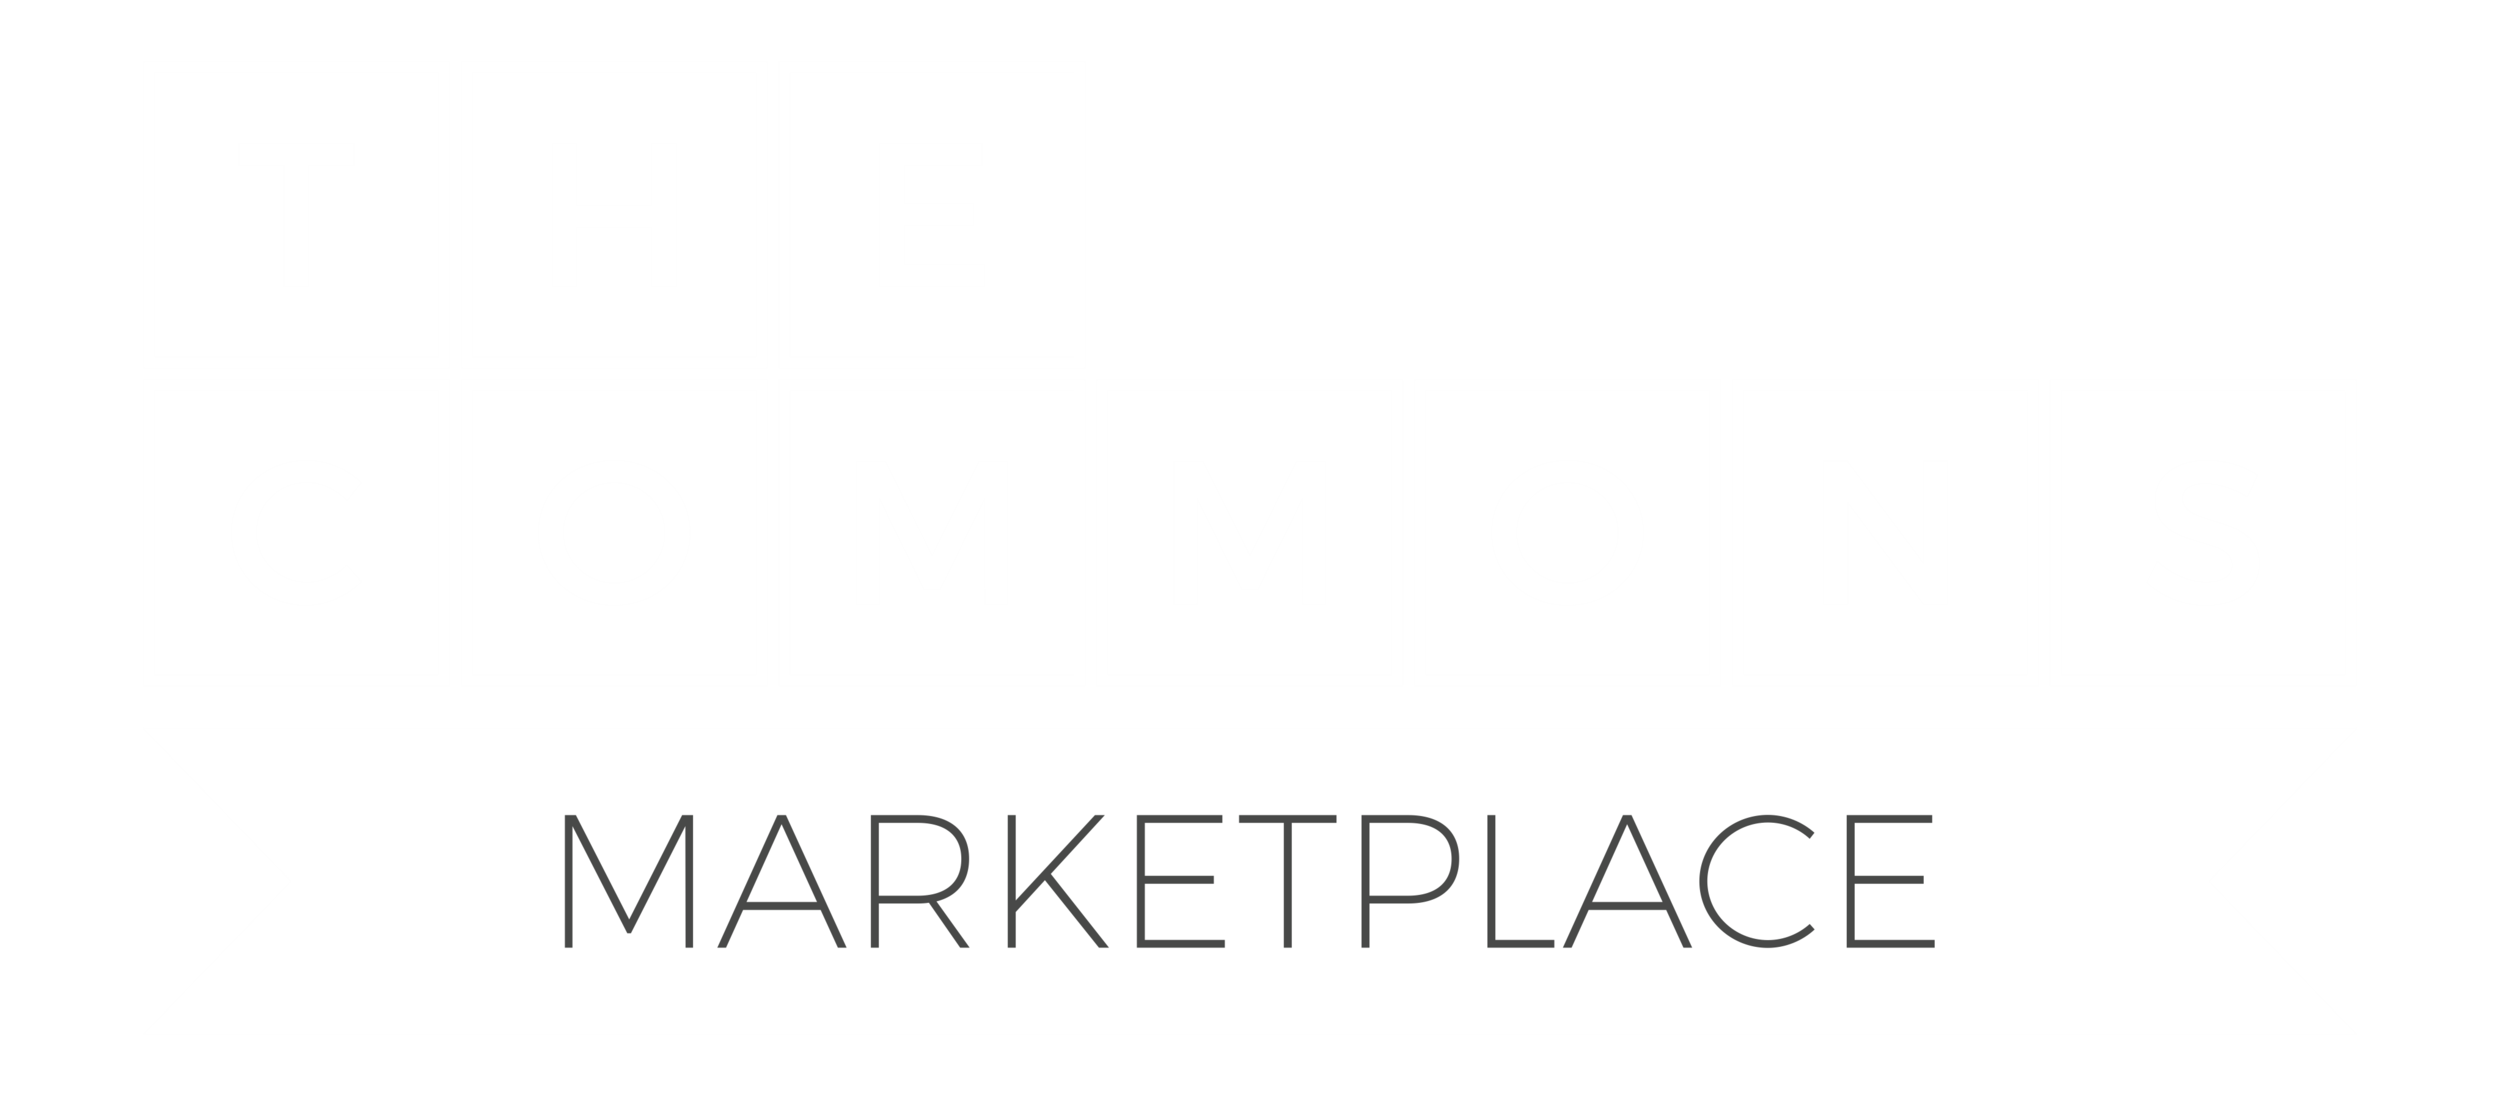 Commons Marketplace - White.png